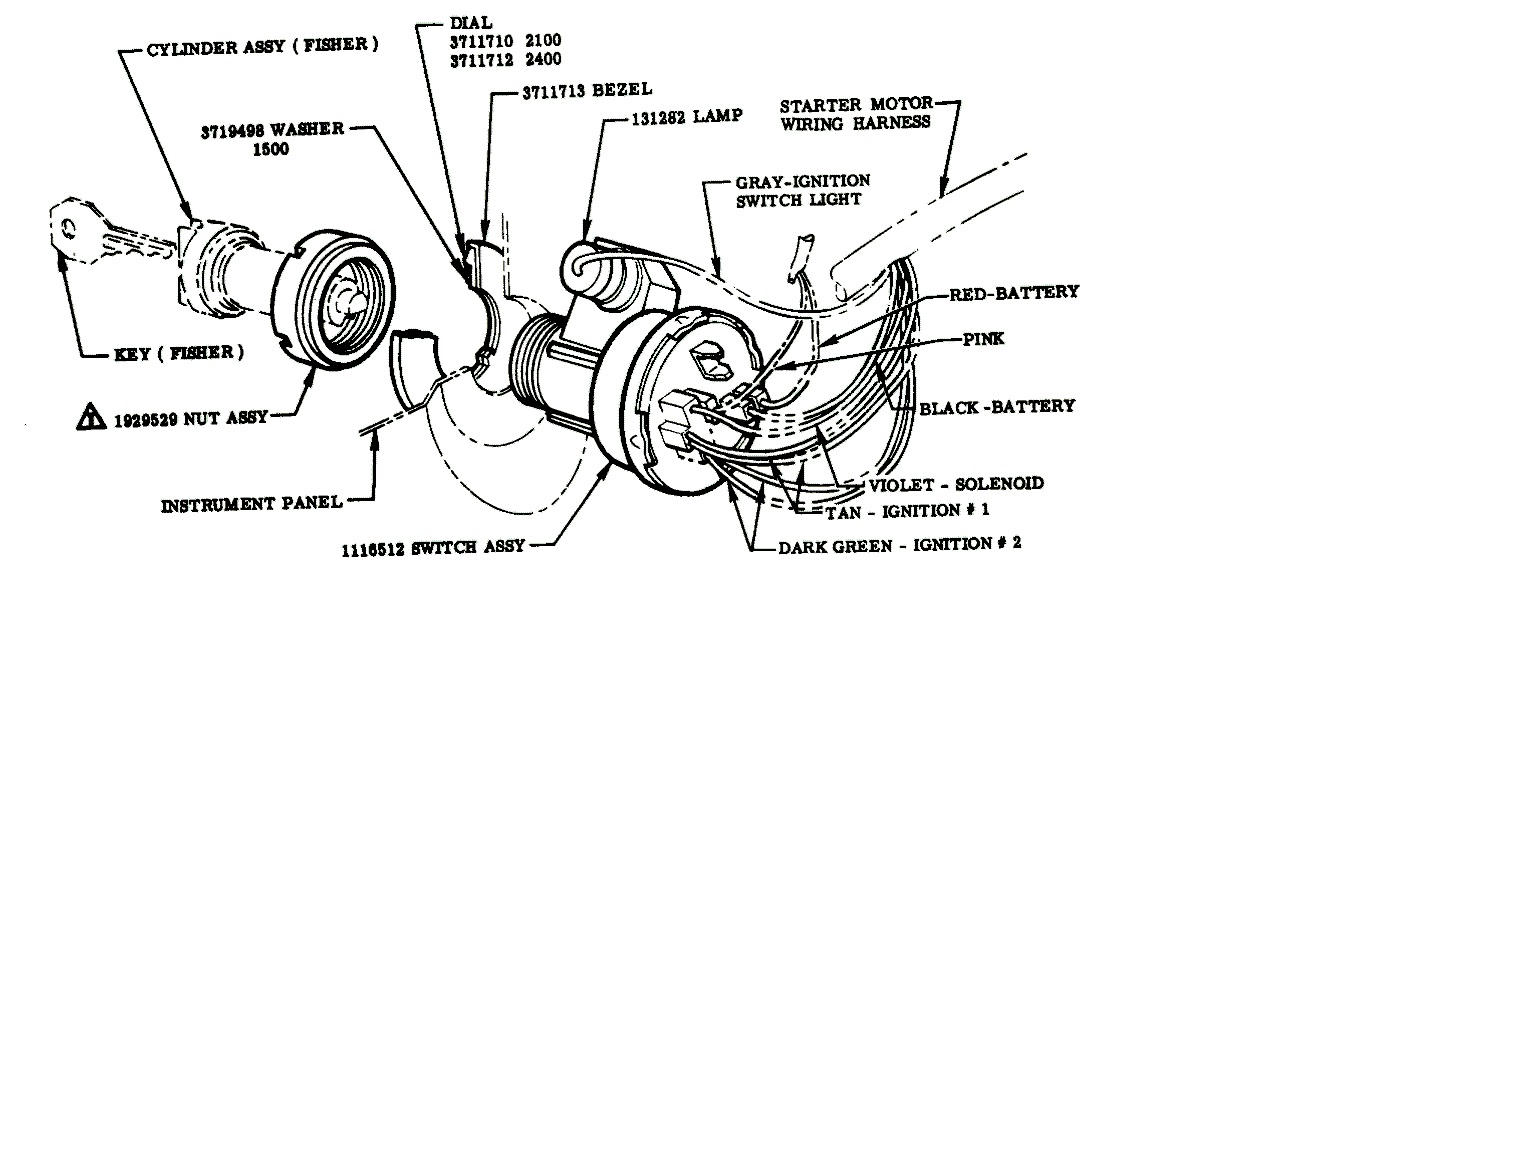 1955 chevy ignition switch wiring diagram box wiring diagram rh 50 pfotenpower ev de